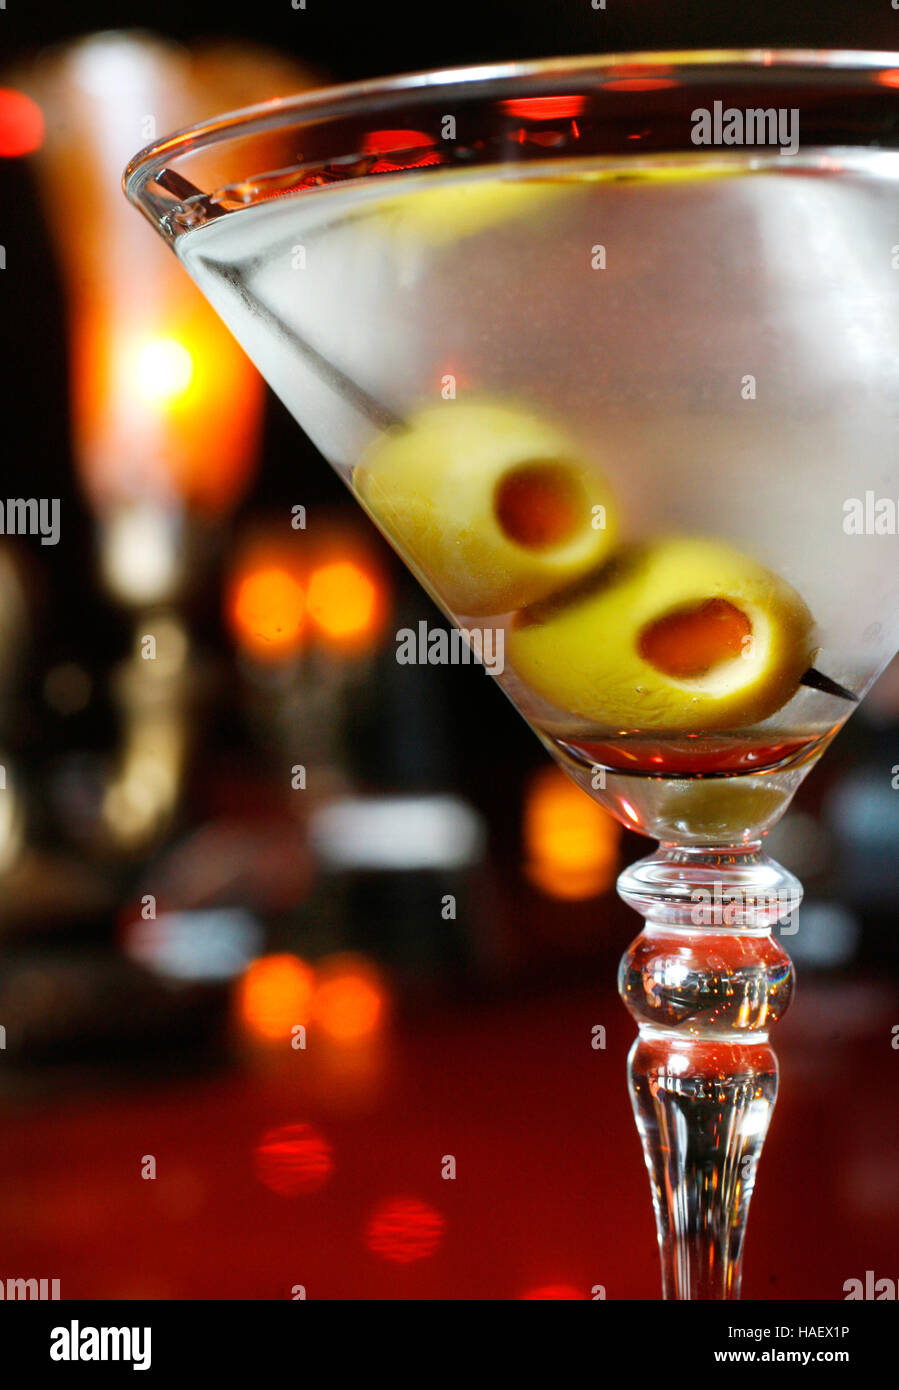 A martini with olives sits on a bar in a cocktail lounge. - Stock Image